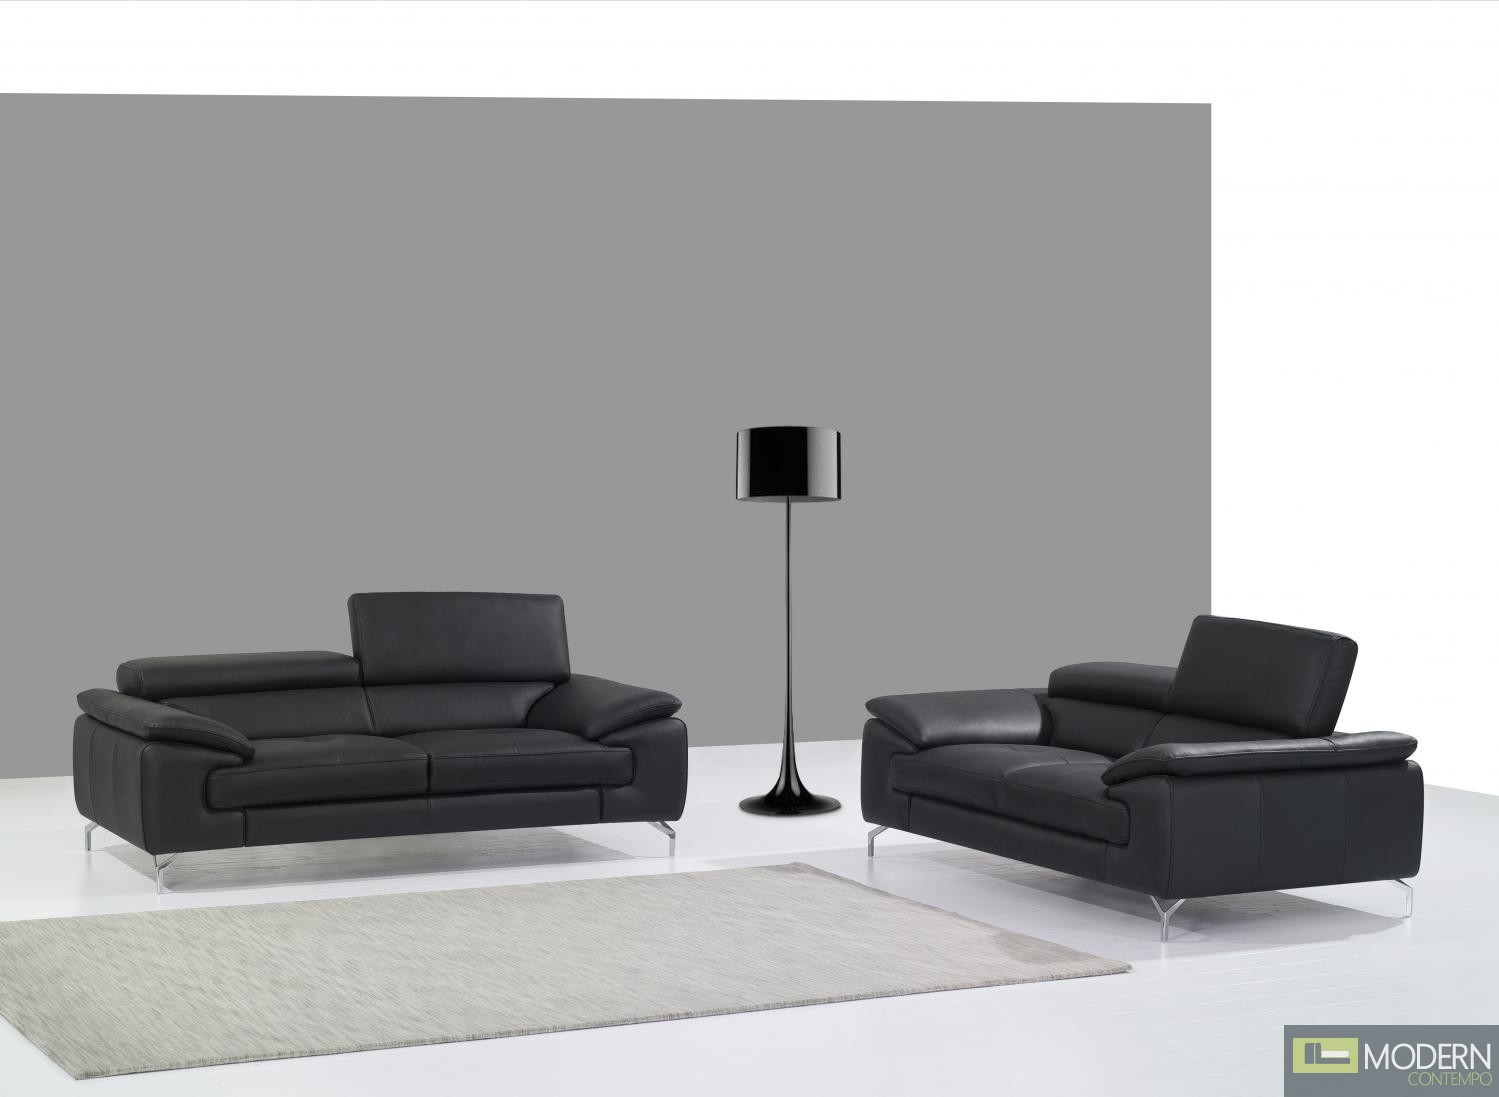 A973 Italian Leather Sofa in Black